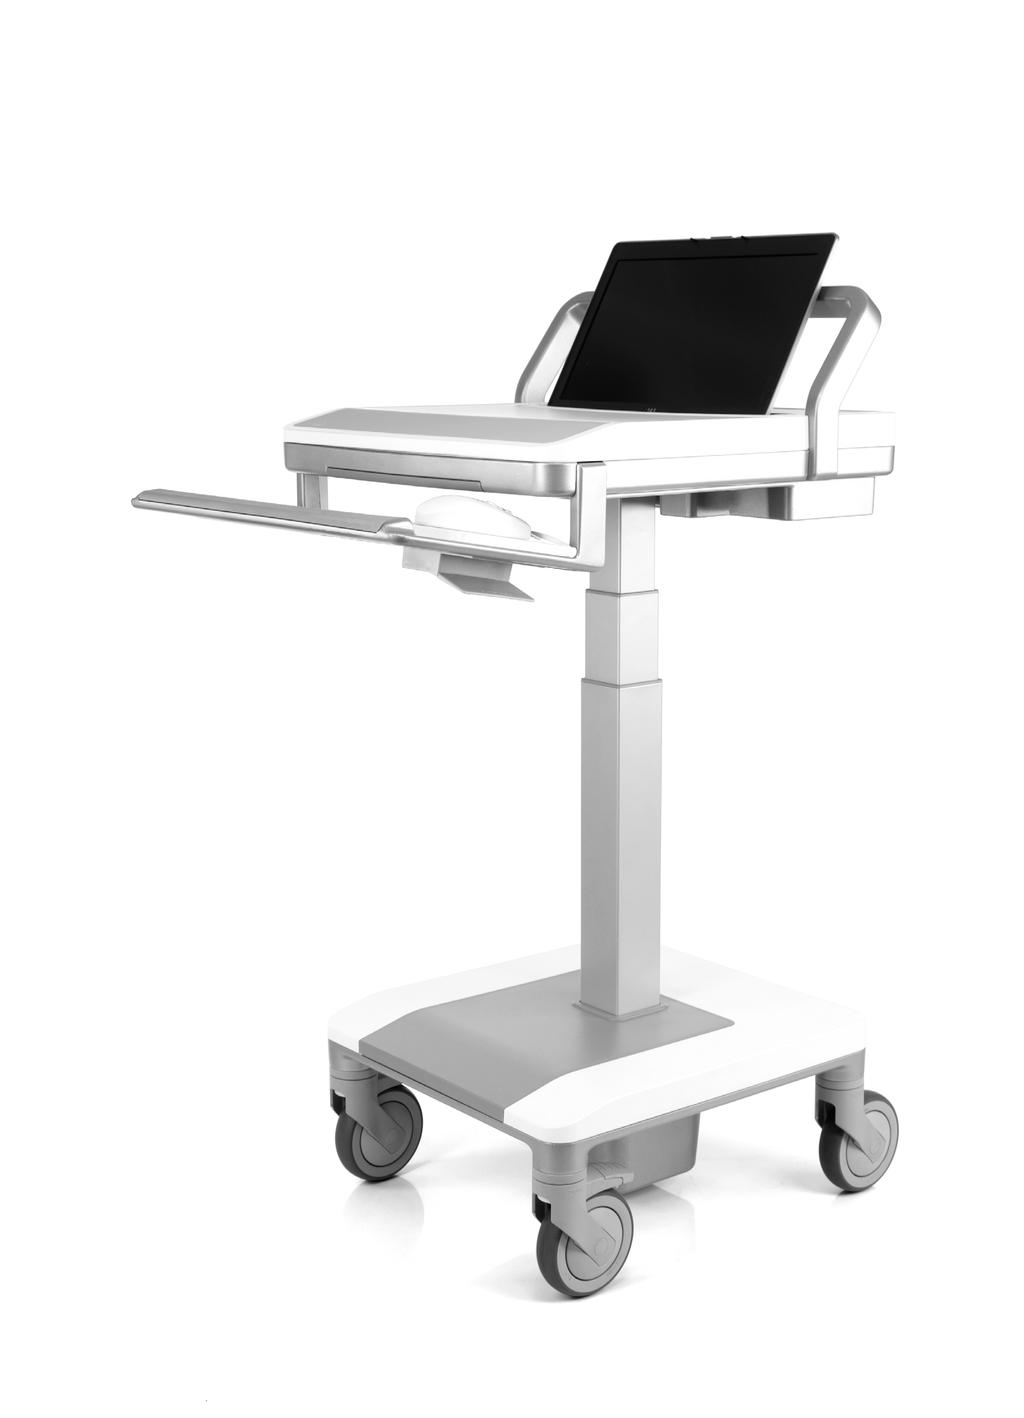 Calming Aesthetics for Any Clinical Setting Brilliantly simple in both form and function, the T7 has a completely encased wire management system, which